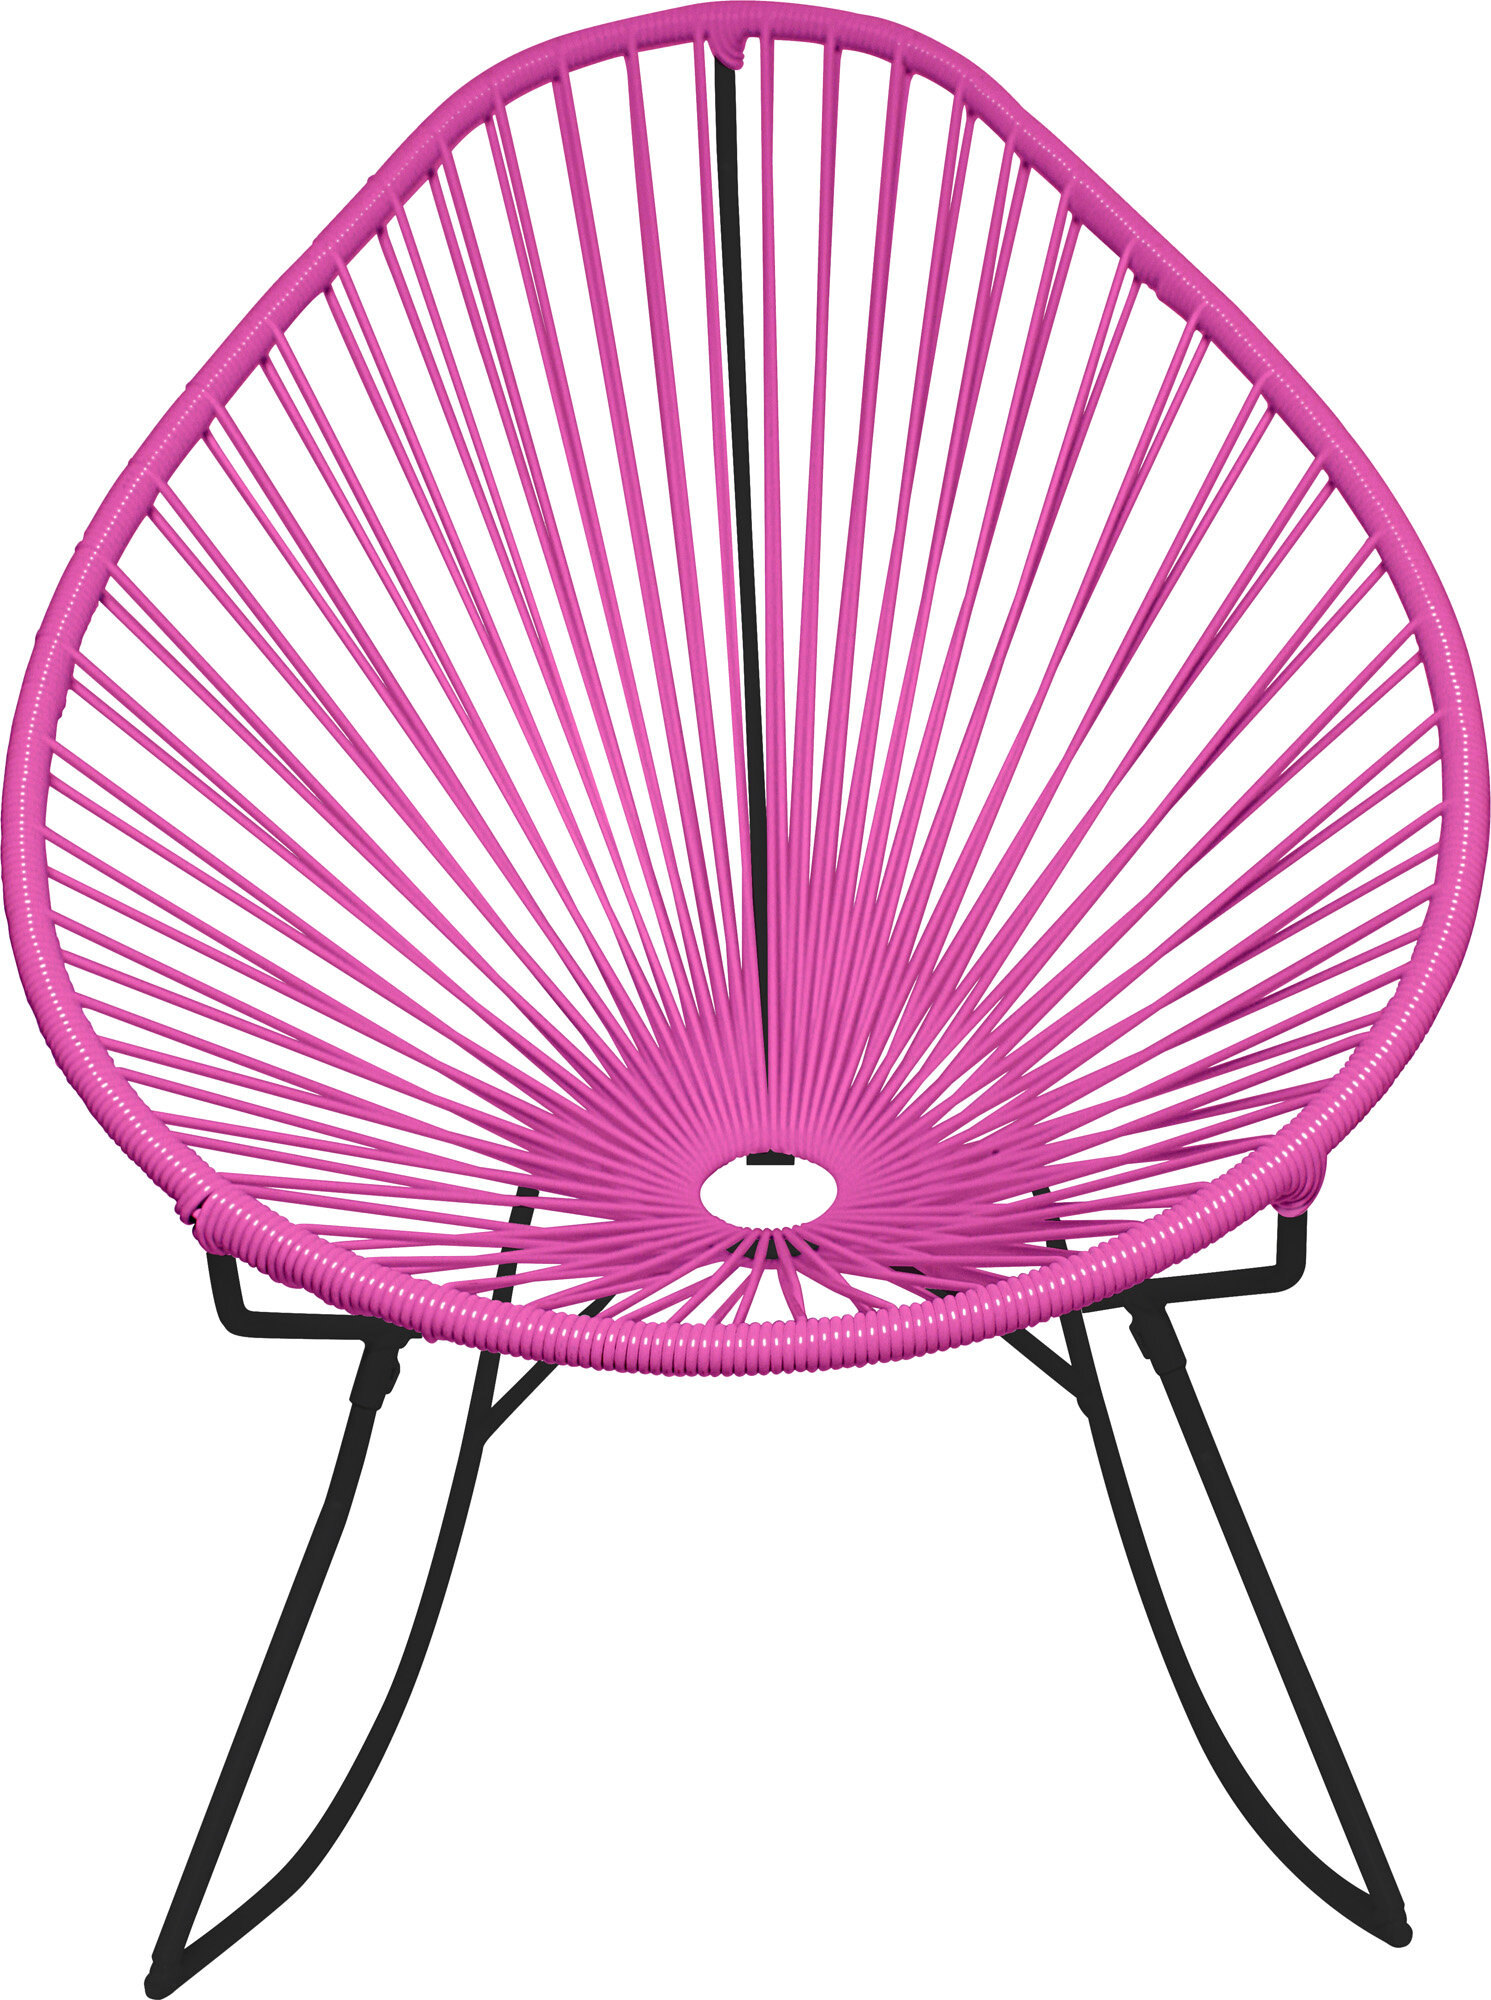 sc 1 st  Wayfair & Innit Acapulco Papasan Chair | Wayfair